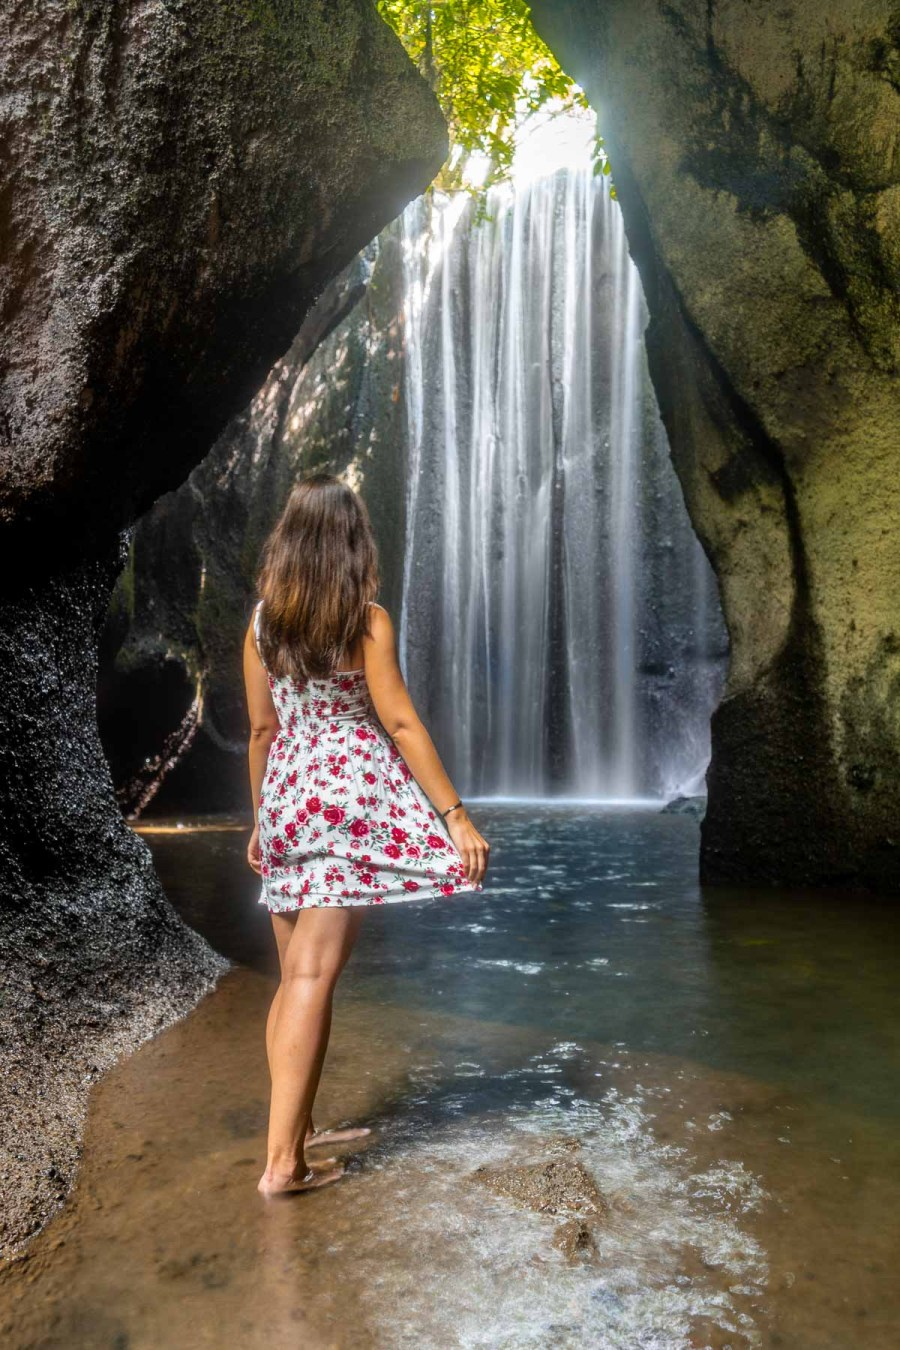 Girl in a red floral dress standing in front of Tukad Cepung Waterfall in Bali